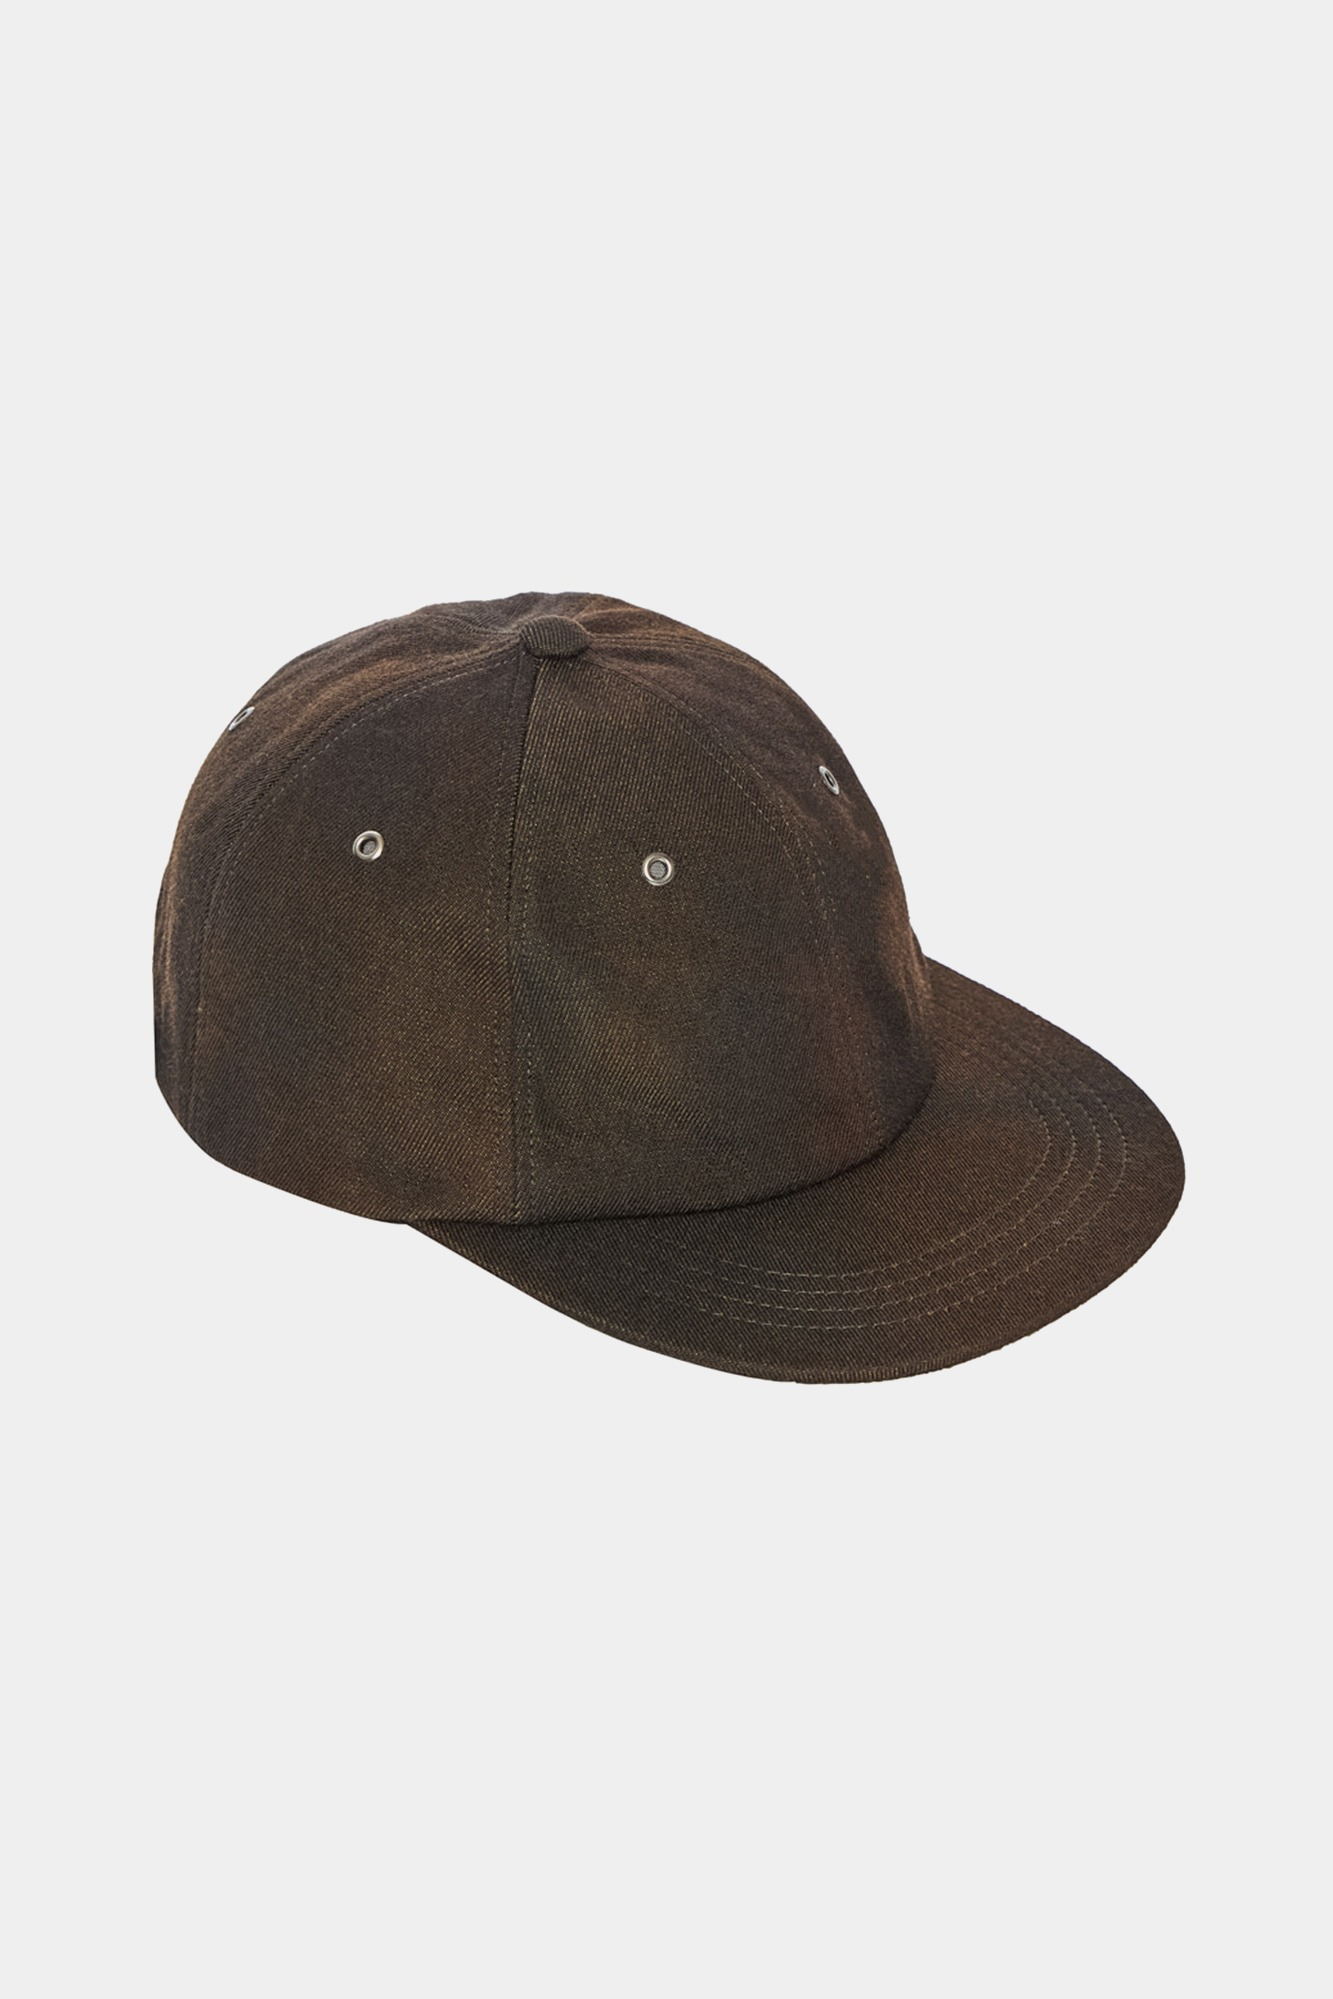 "EASTLOGUE Mechanic Cap ""Military Twill"""